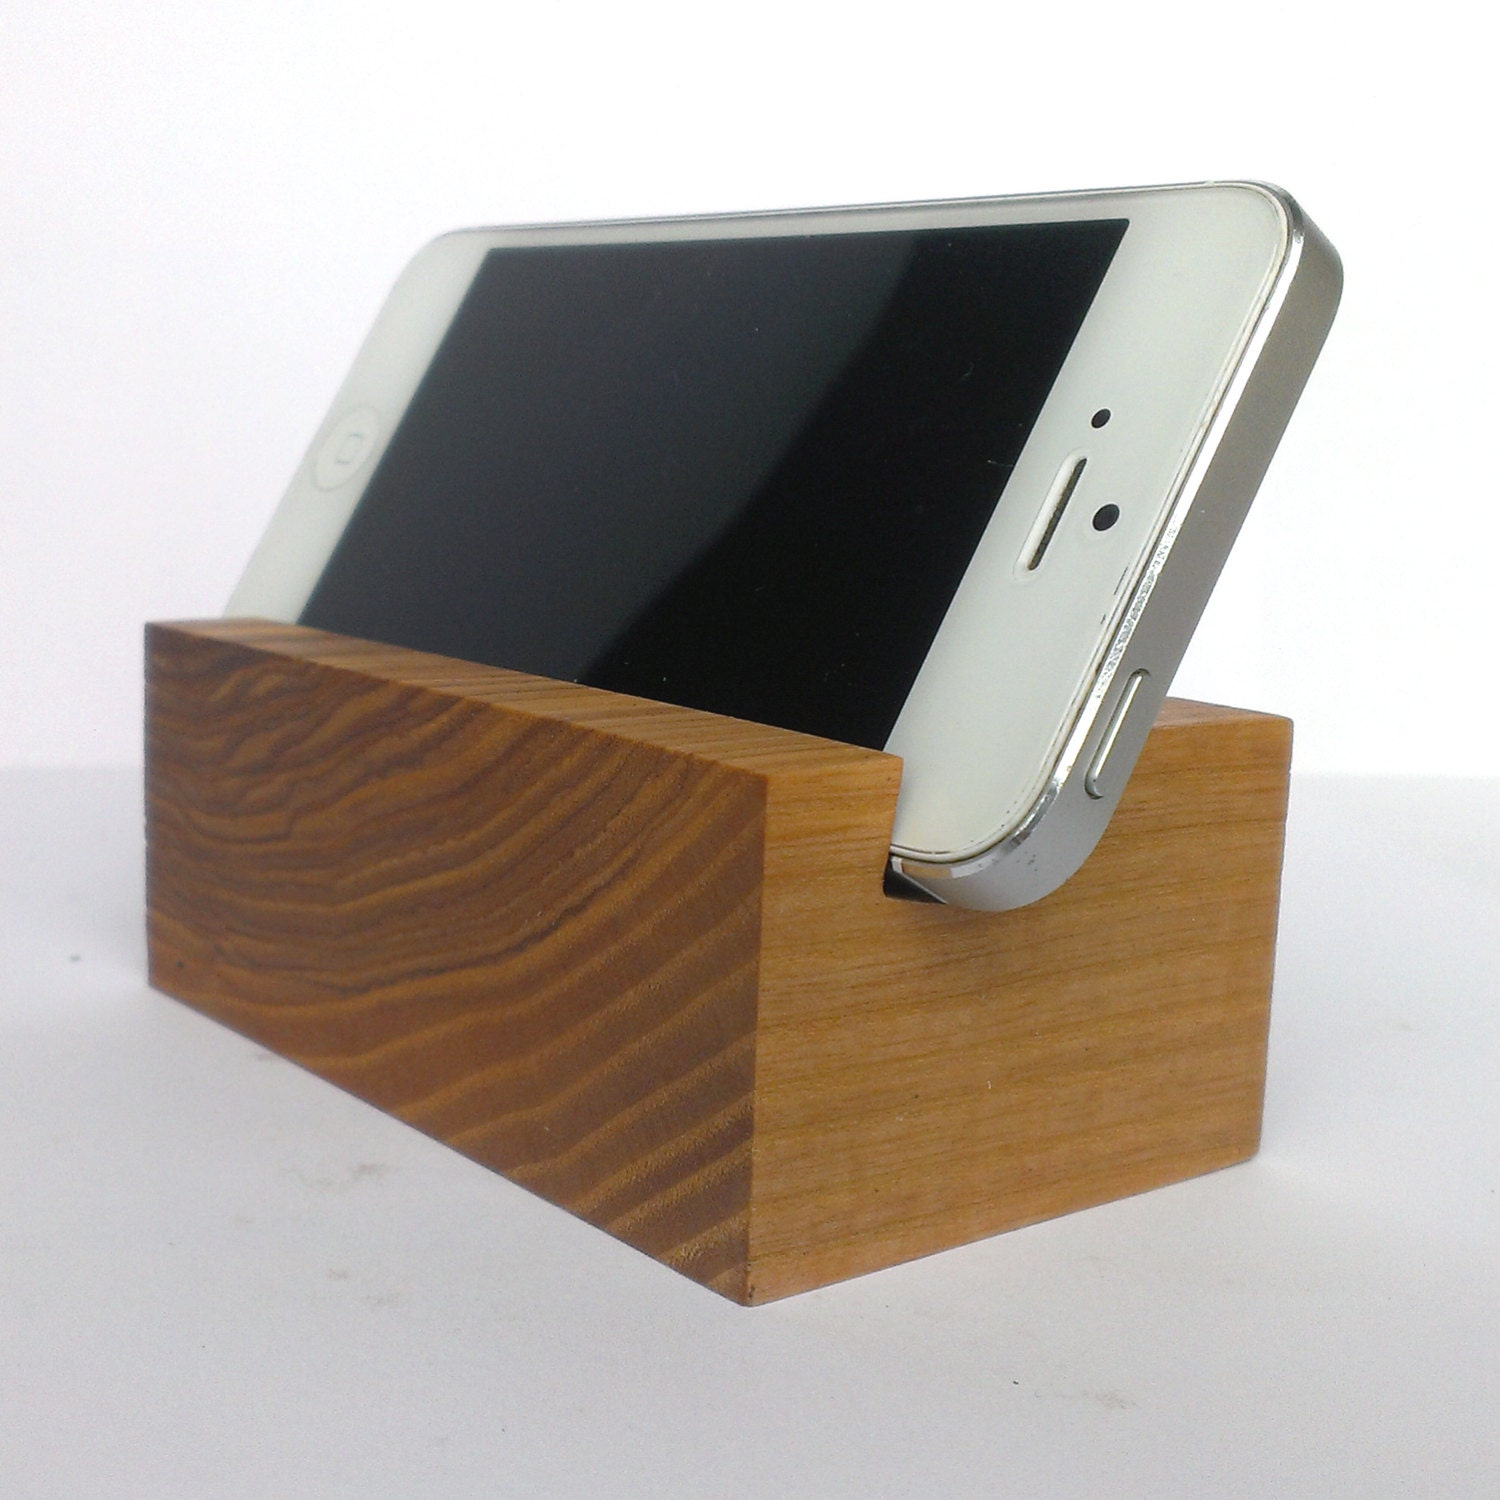 duty removable of heavy p cell picture geekx s holder stand phone smartphone for mount desk